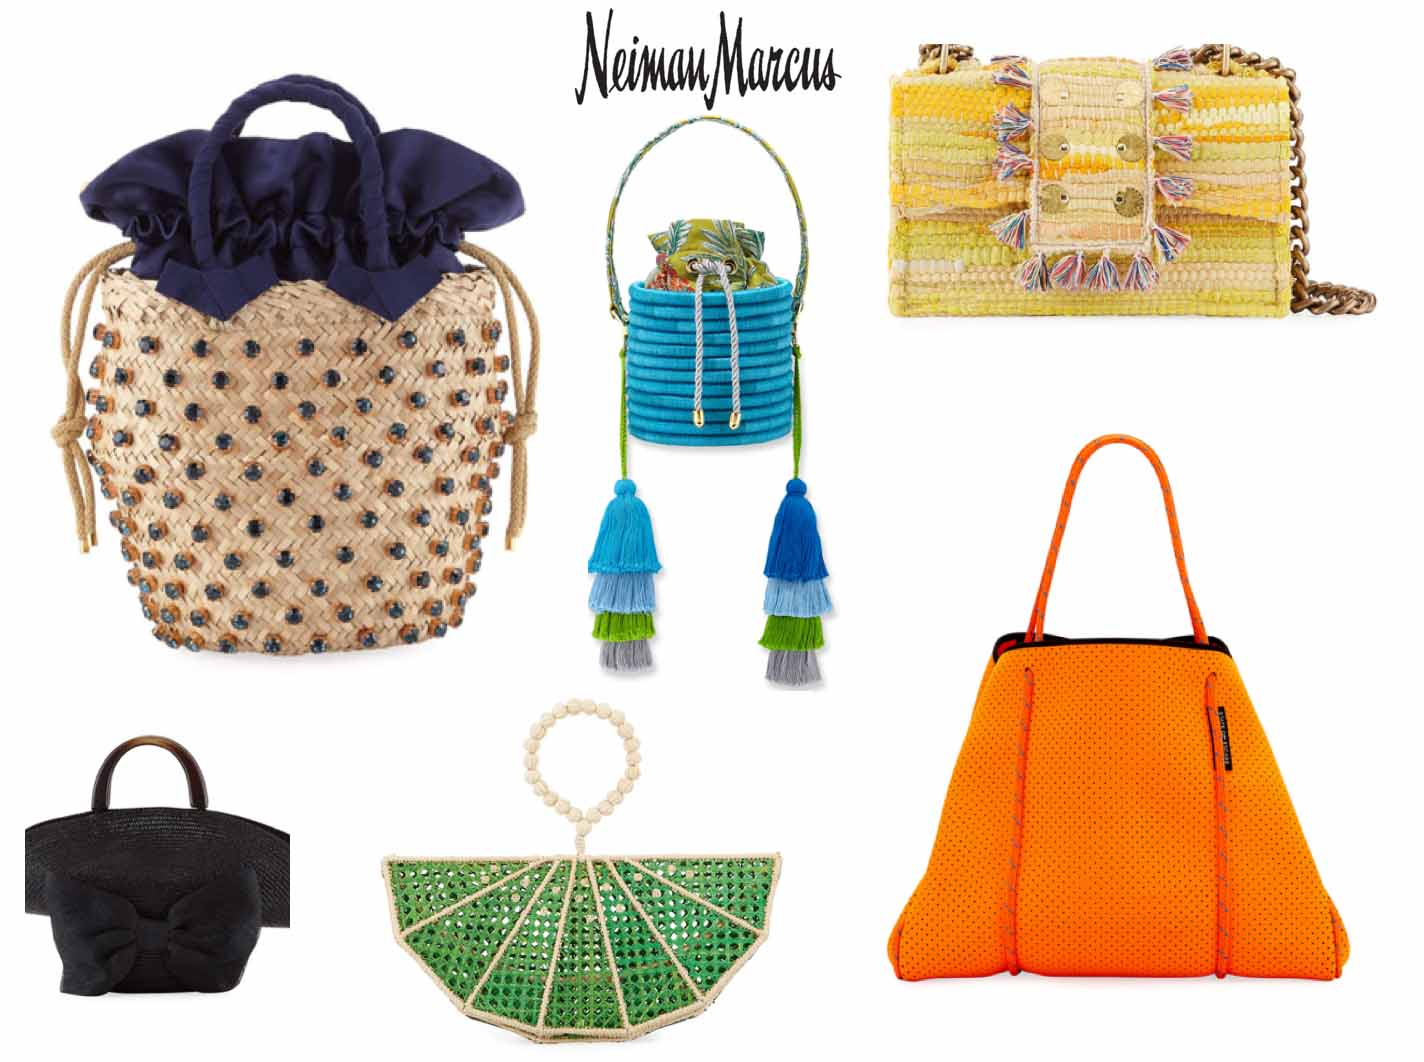 Neiman Marcus Bags to be Seen